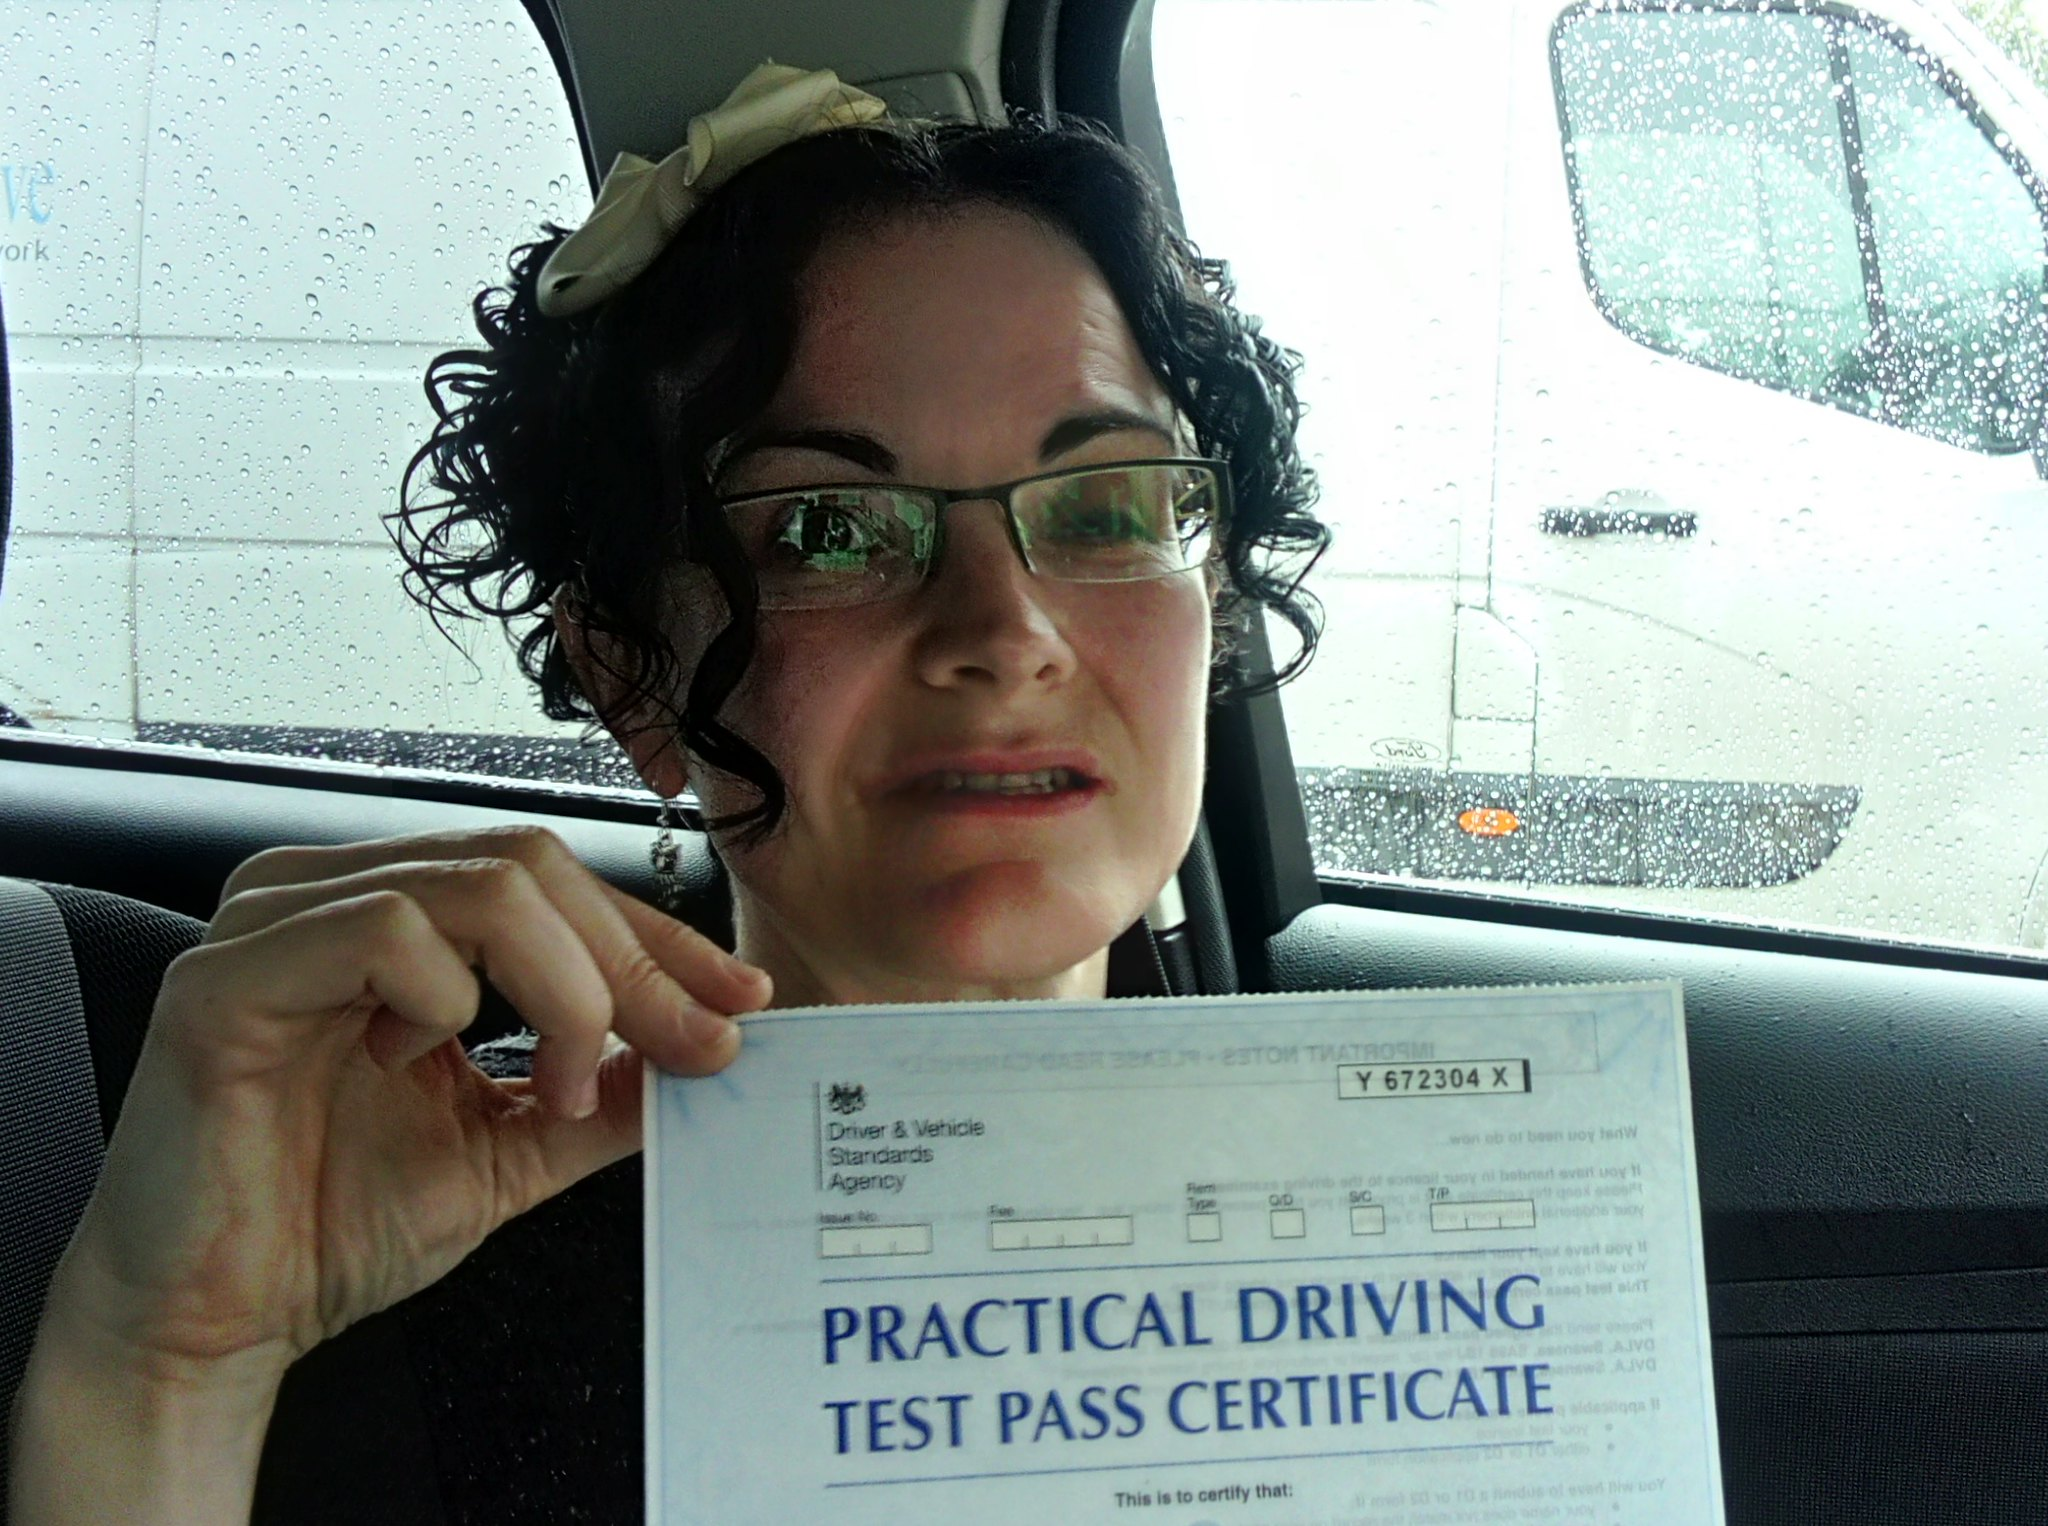 Liz Hunter passes driving test in grimsby with 21st Century Driving